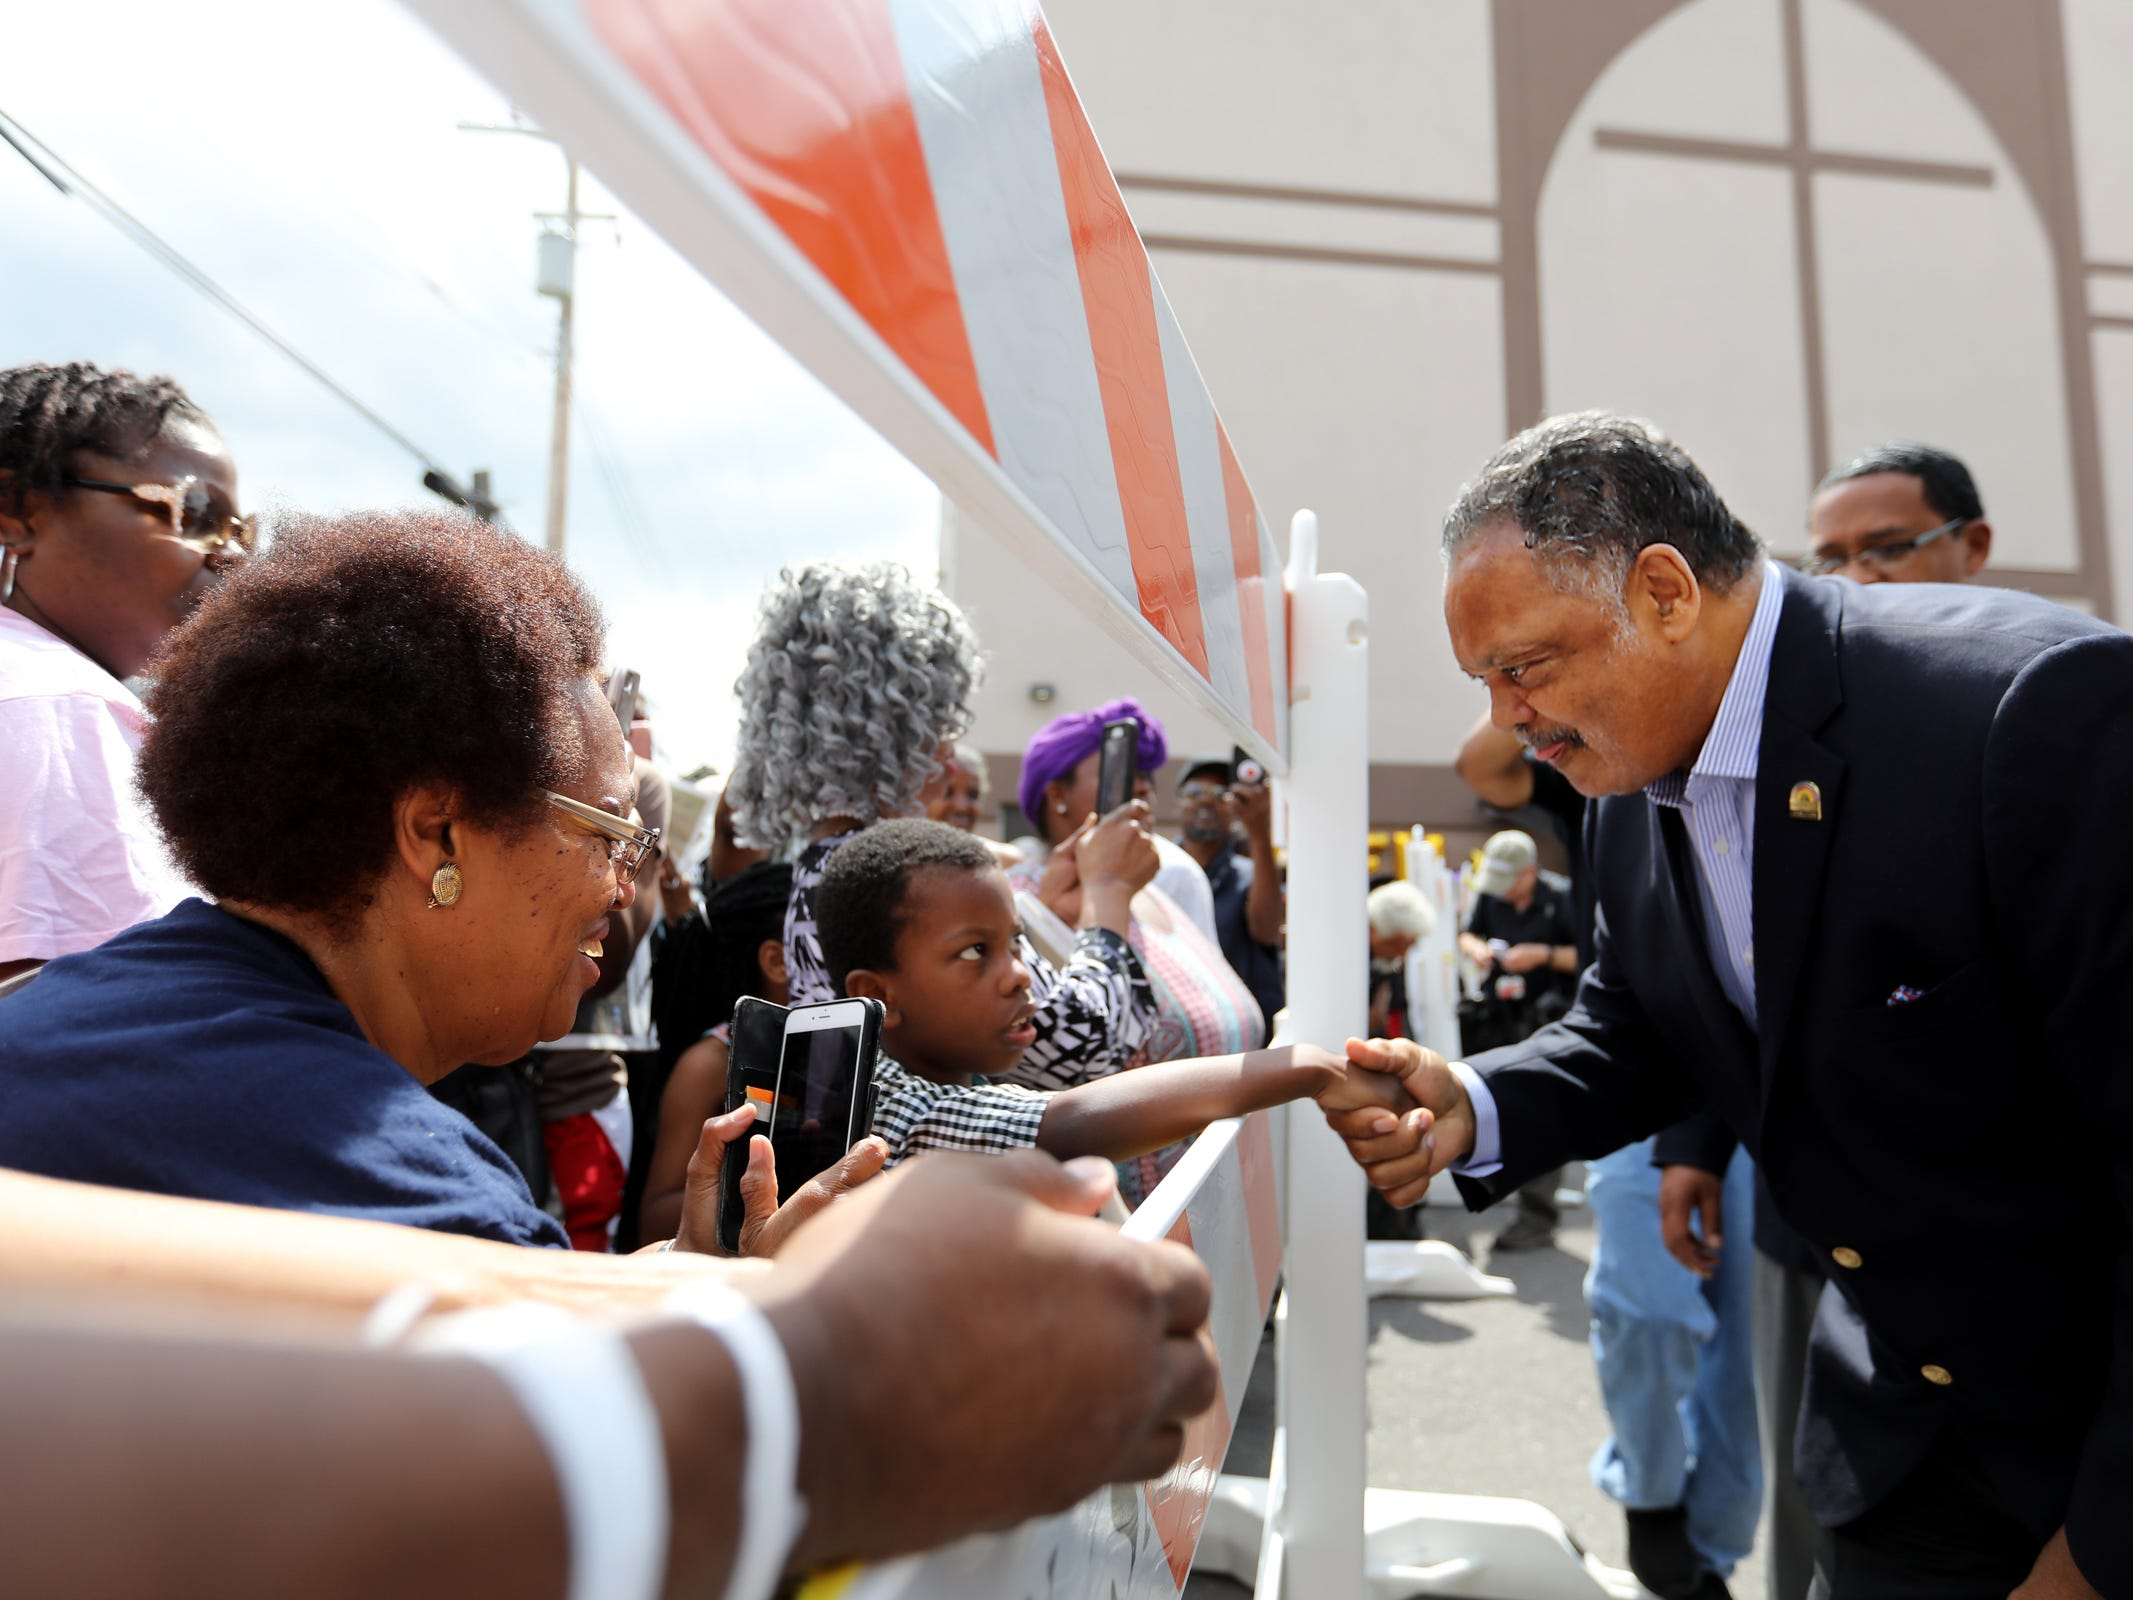 Rev. Jesse Jackson greets the crowd at the public viewing for Aretha Franklin at New Bethel Baptist church, her family church,  in Detroit on Thursday, Aug. 30, 2018.